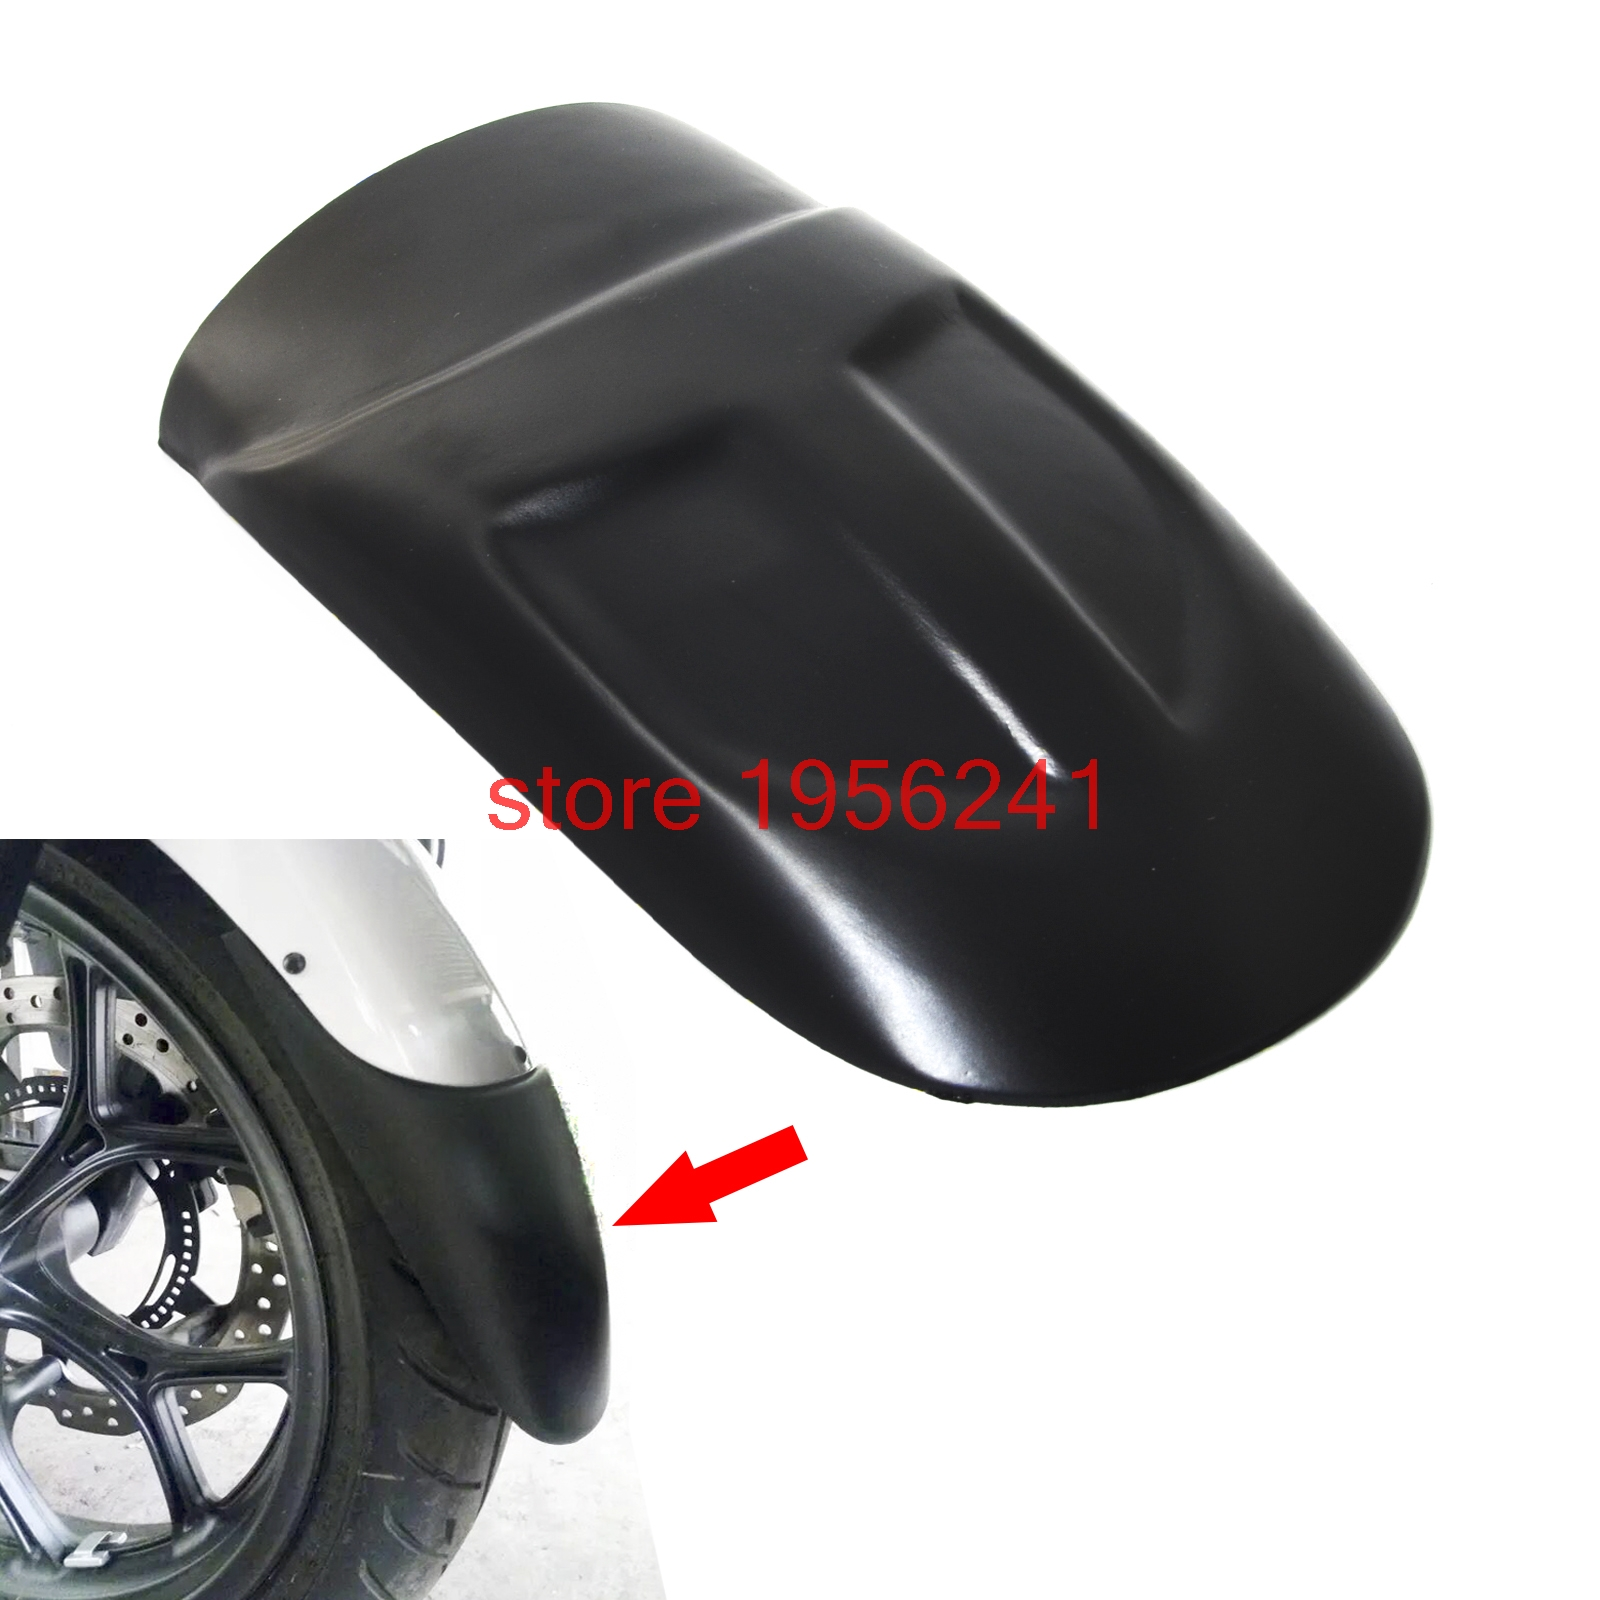 Motorcycle Front fender extension for Yamaha MT-09 MT09 FZ-09 FZ9 2014 2015 2016 motorcycle front fender extension extender for yamaha mt09 fz09 2014 2015 2016 mt fz 09